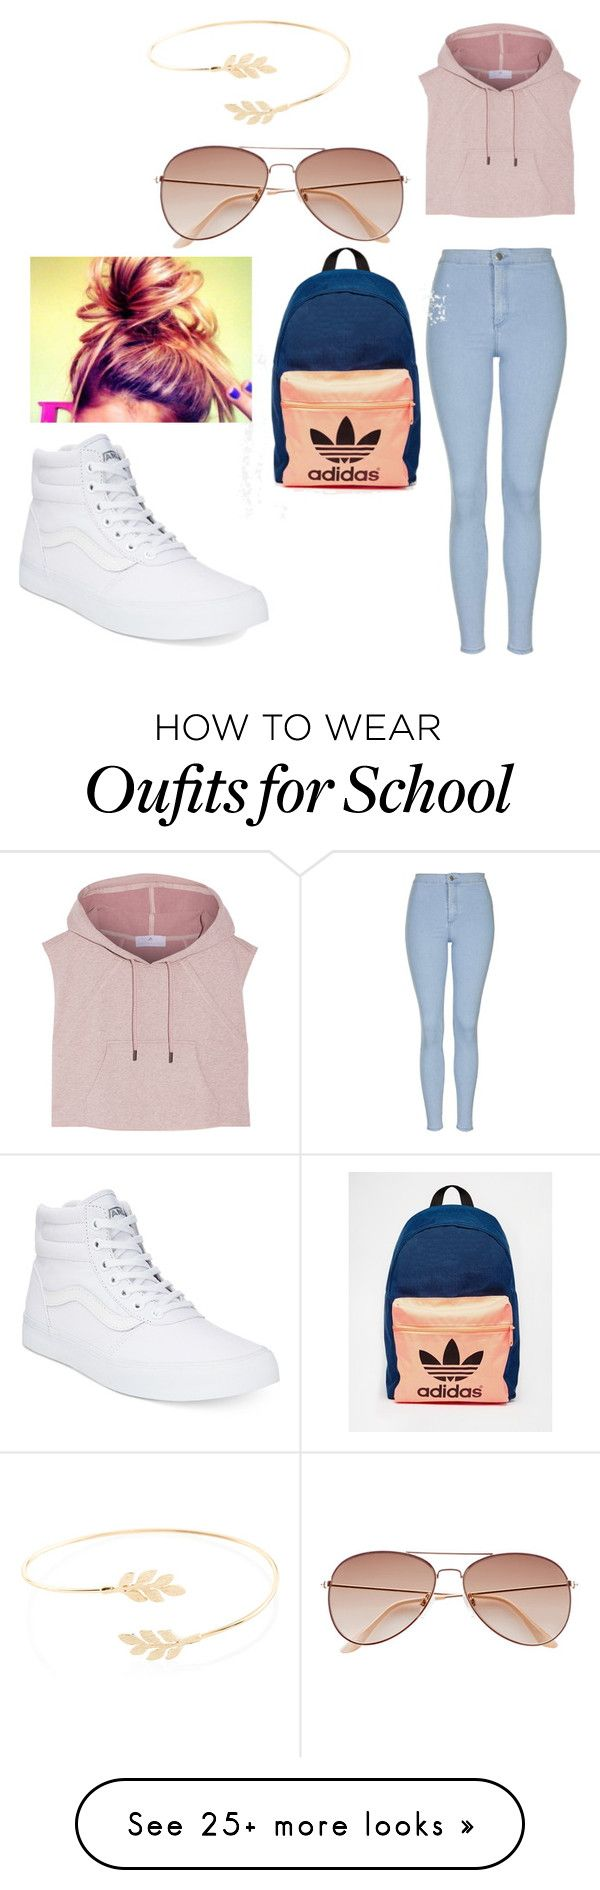 """on my way to school"" by sashten on Polyvore featuring Topshop, Vans, adidas, Accessorize, women's clothing, women, female, woman, misses and juniors"